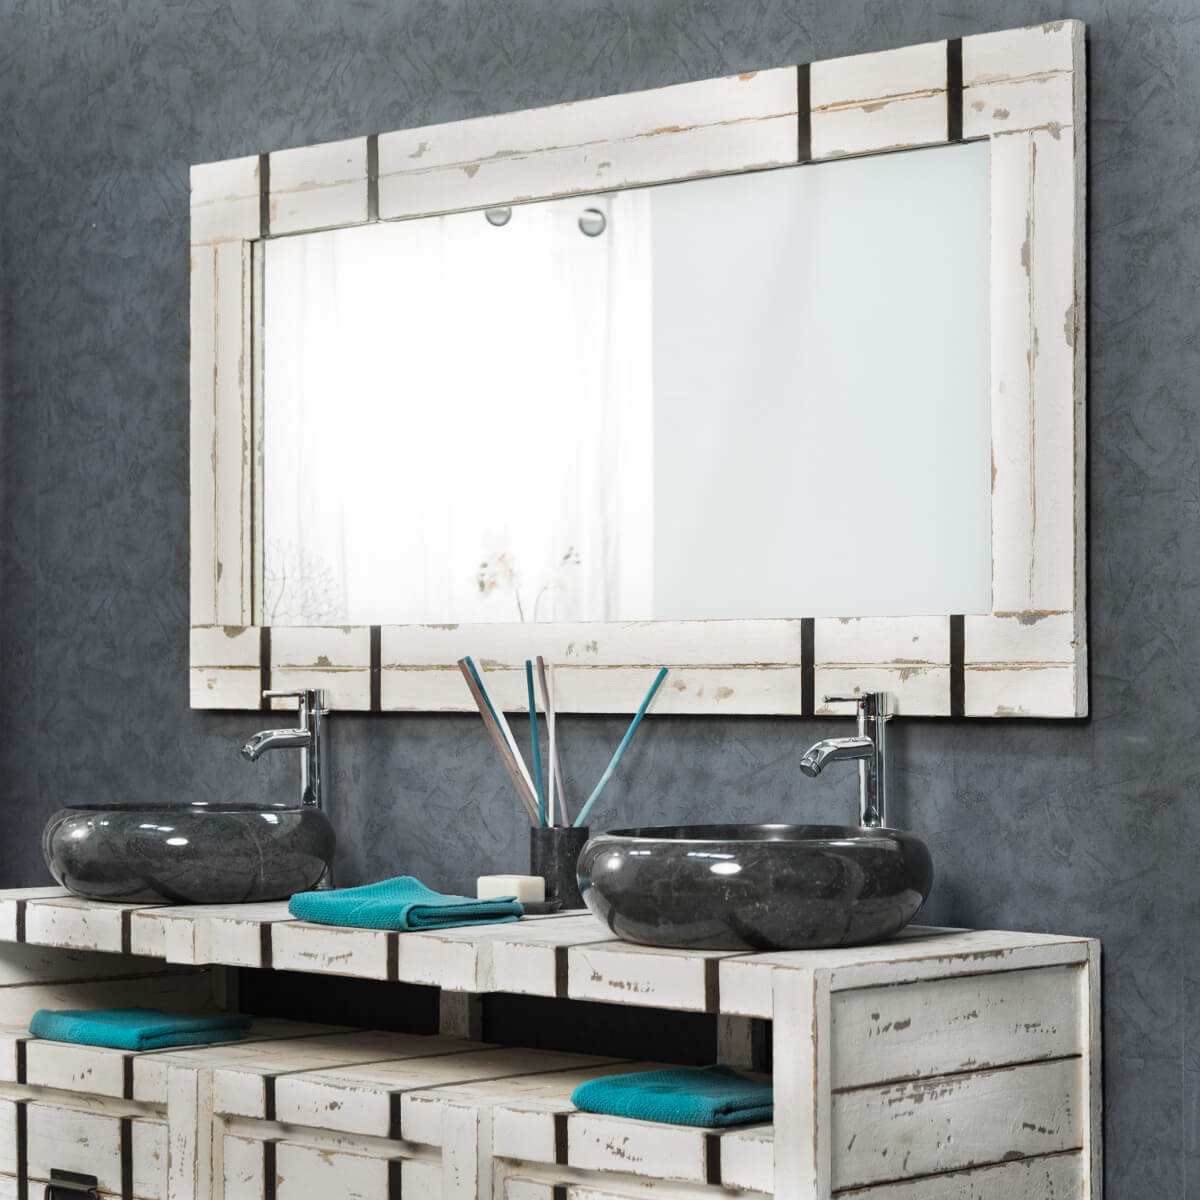 Grand Miroir De Salle De Bain LOFT 160x80 Wanda Collection